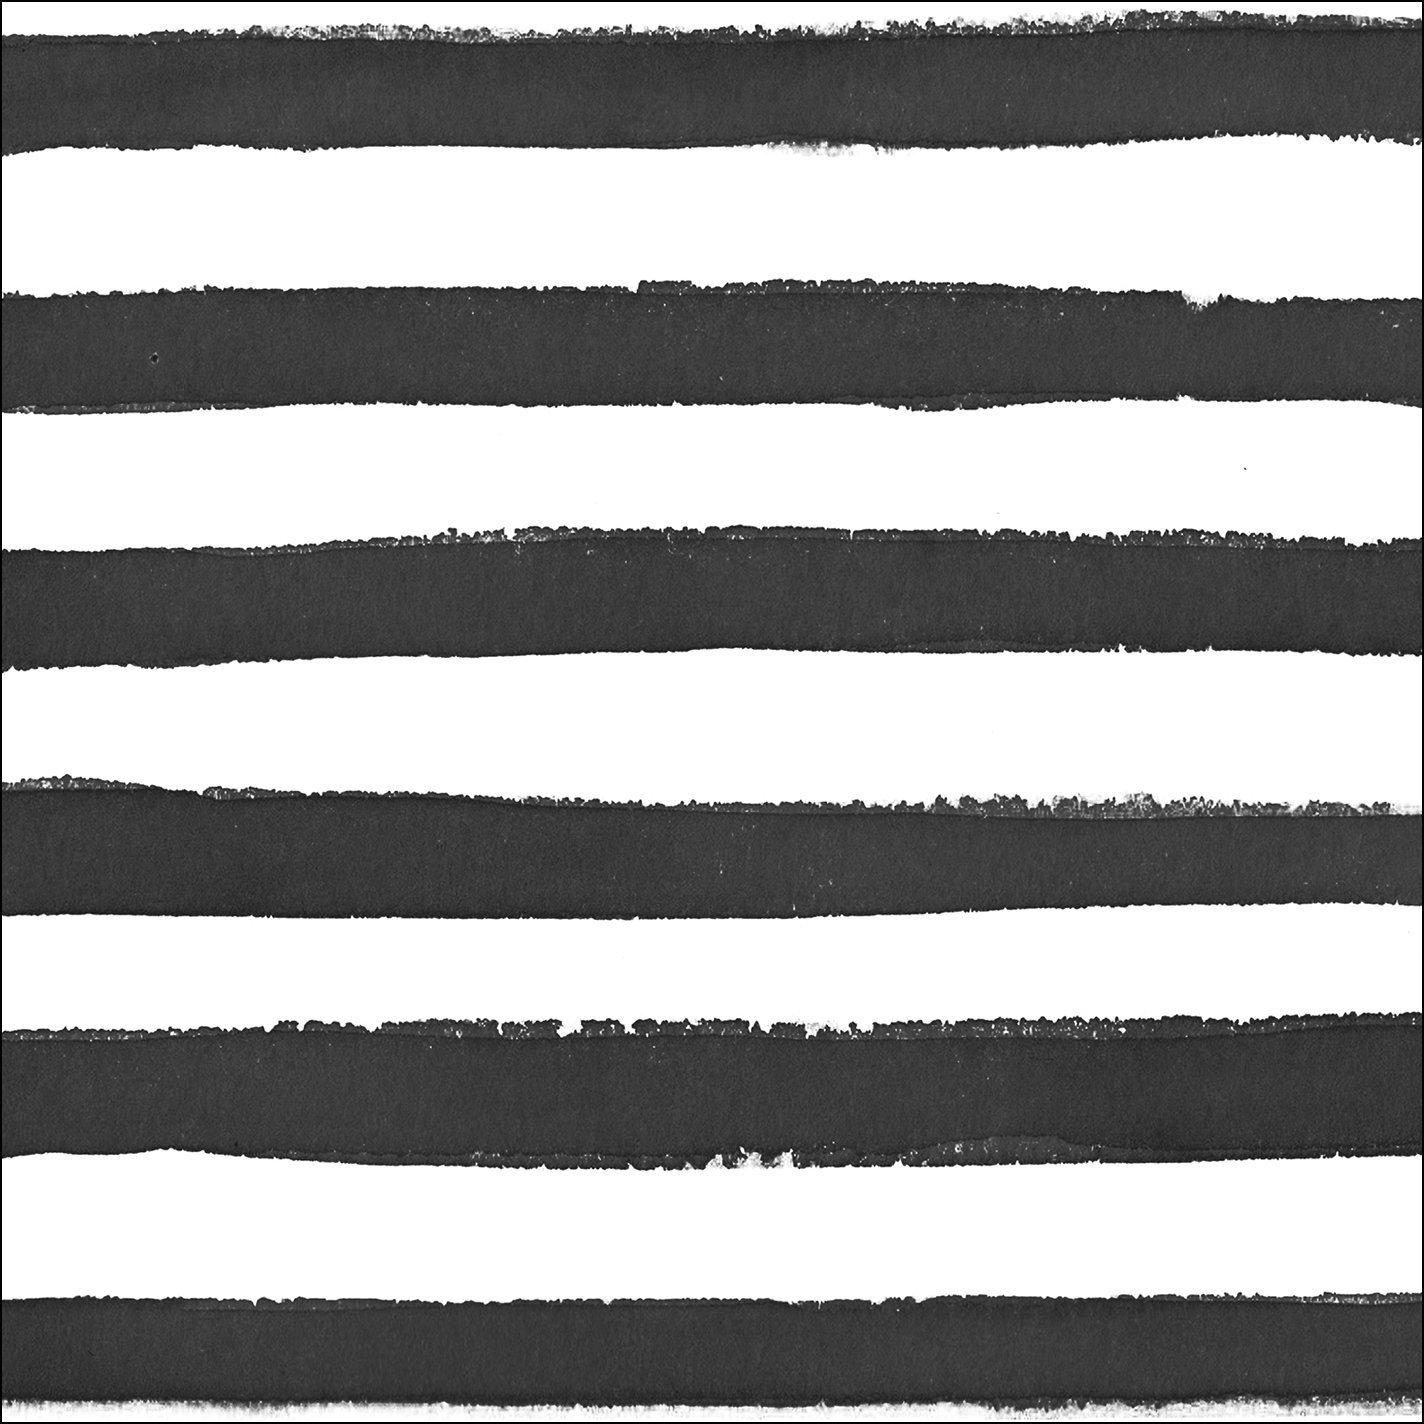 Creative Converting 72 Count Premium Patterned Beverage Napkins, Dotted and Striped, Licorice by Creative Converting